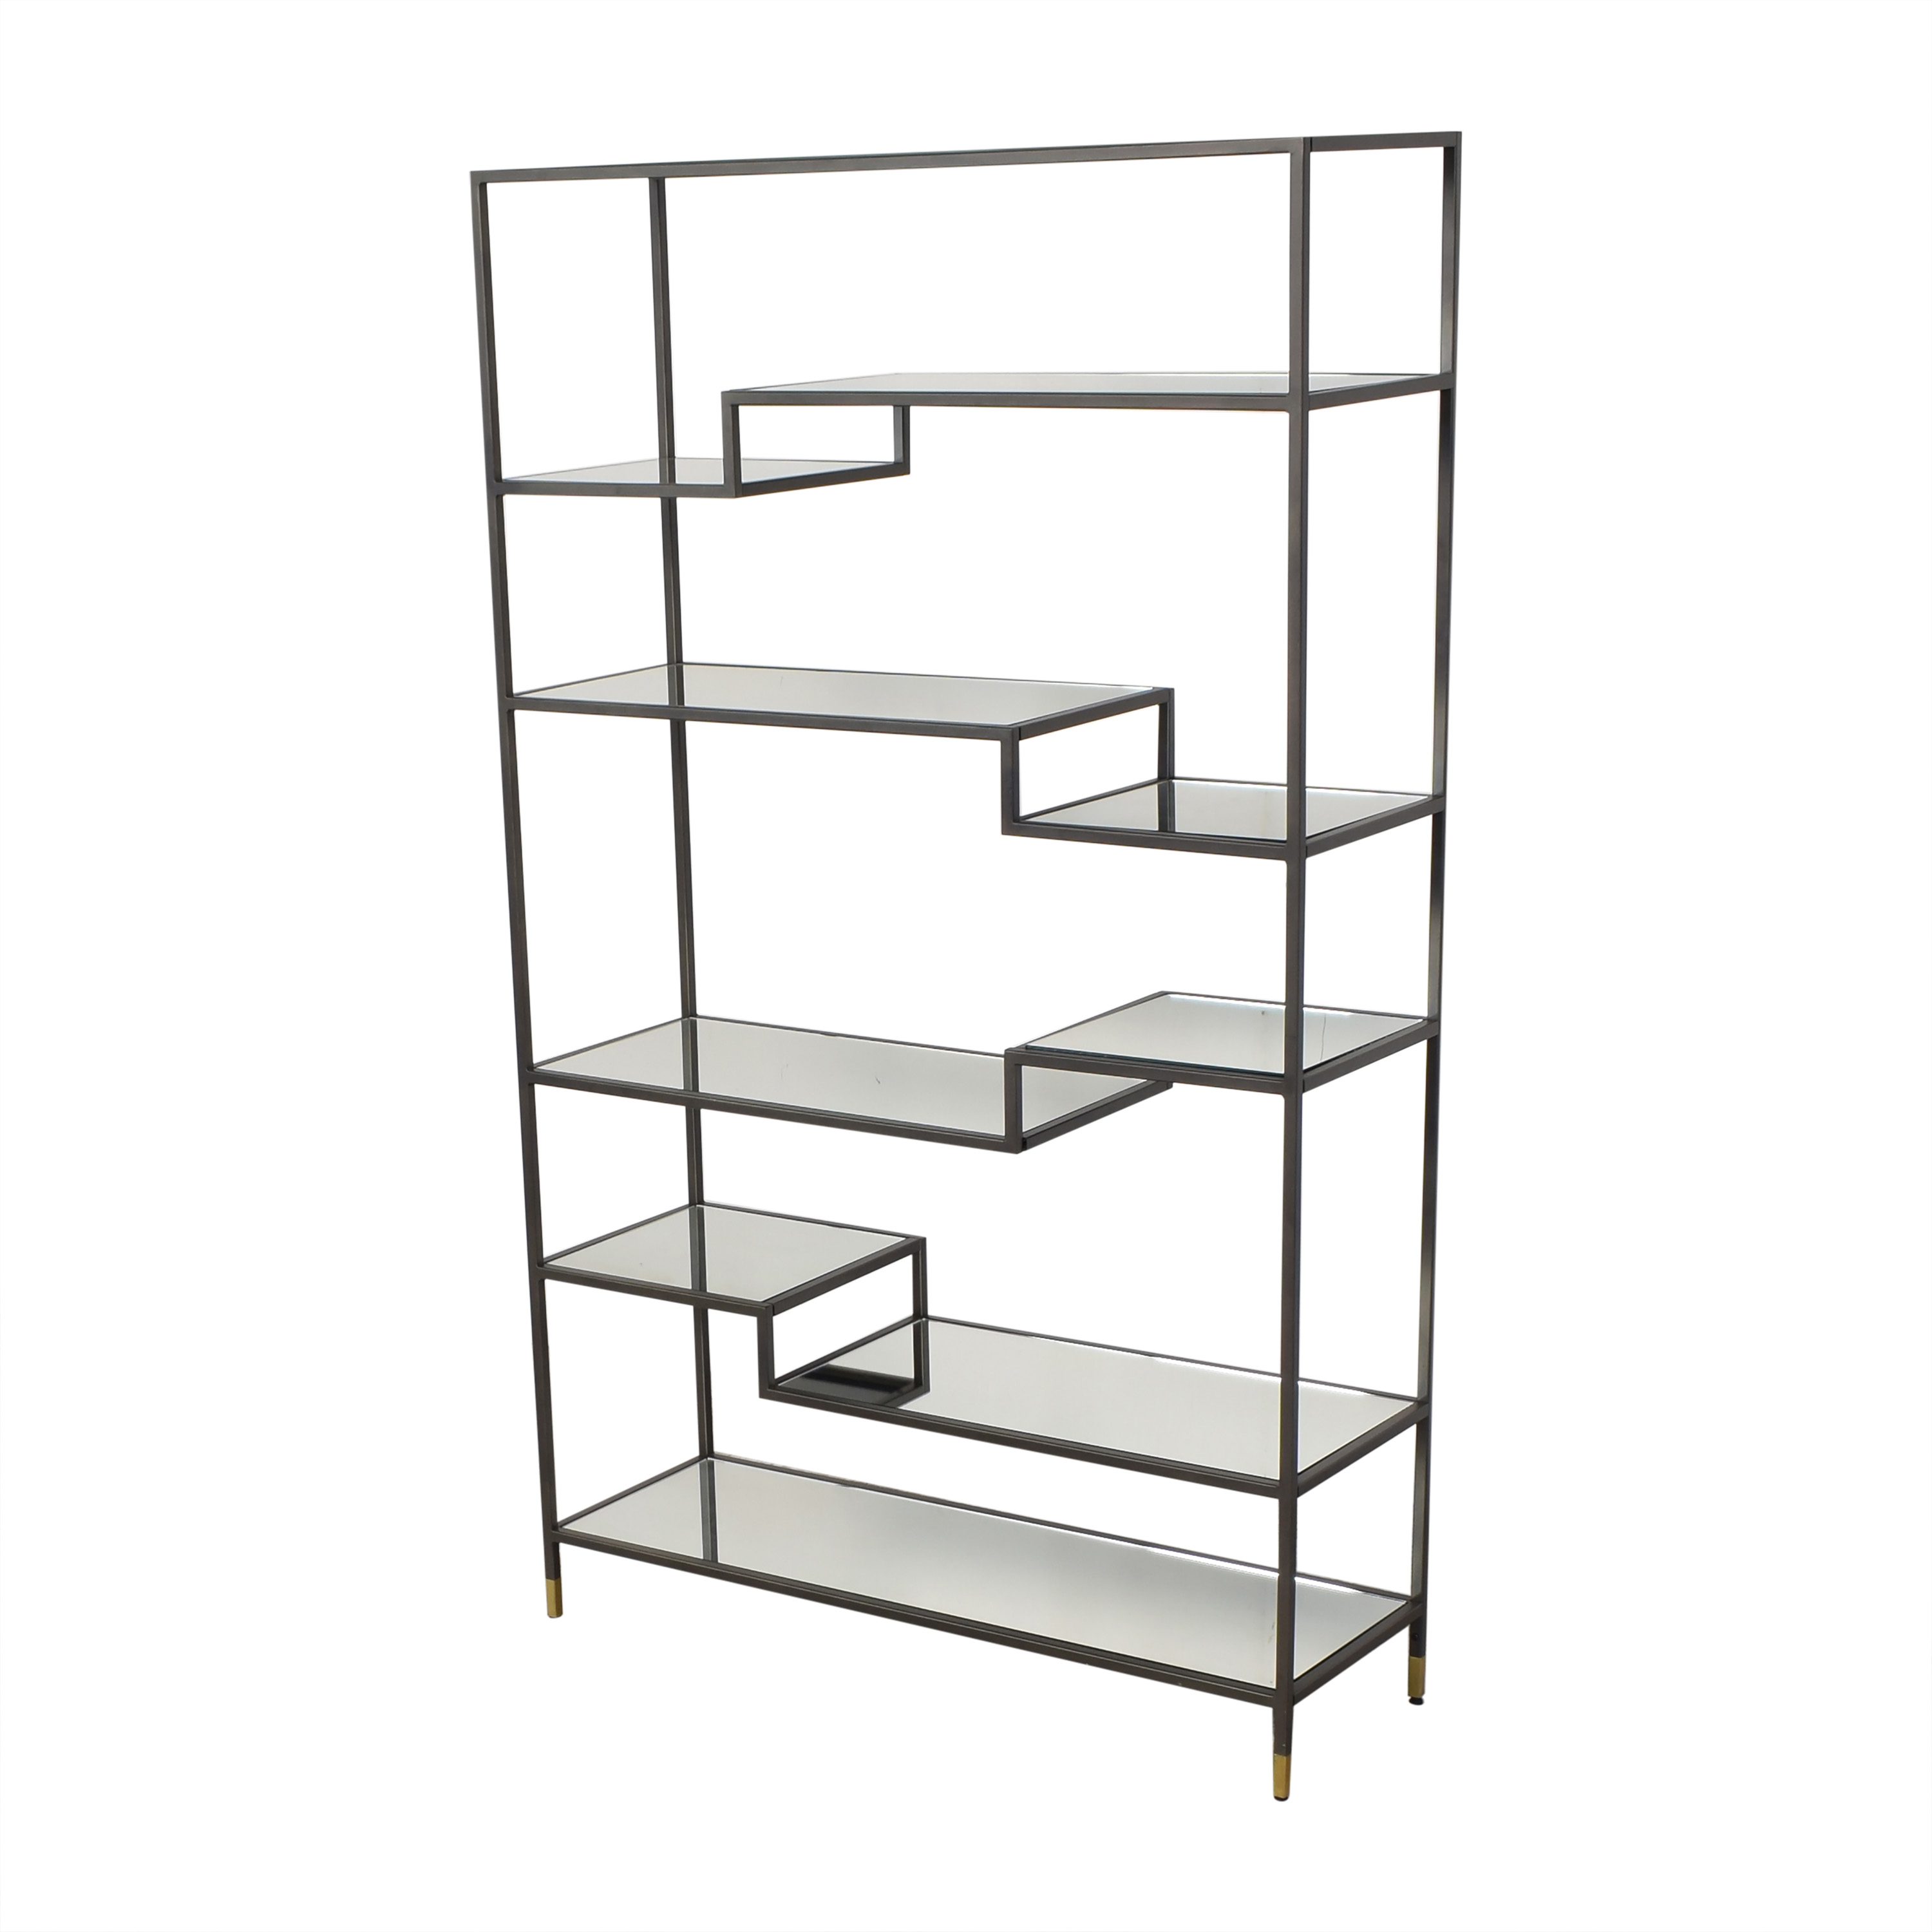 West Elm West Elm Tiered Tower Bookshelf Storage